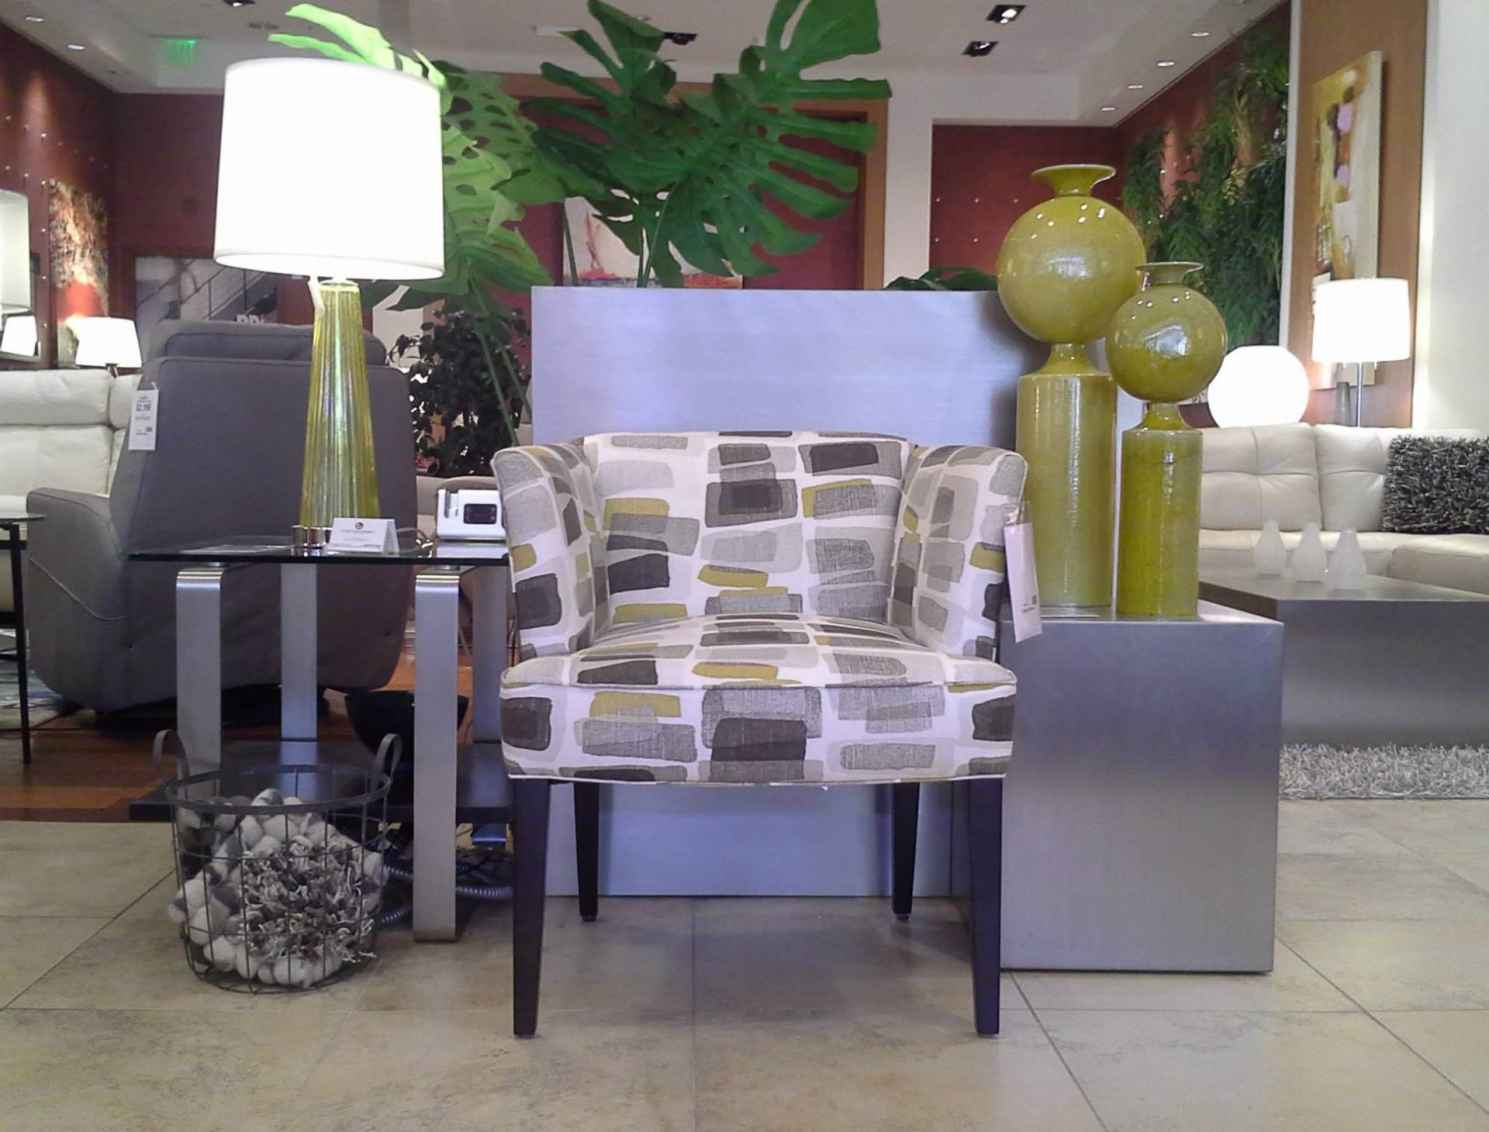 Home Furniture Store In Palm Beach Gardens Features Pieces From Louis Lara Designs